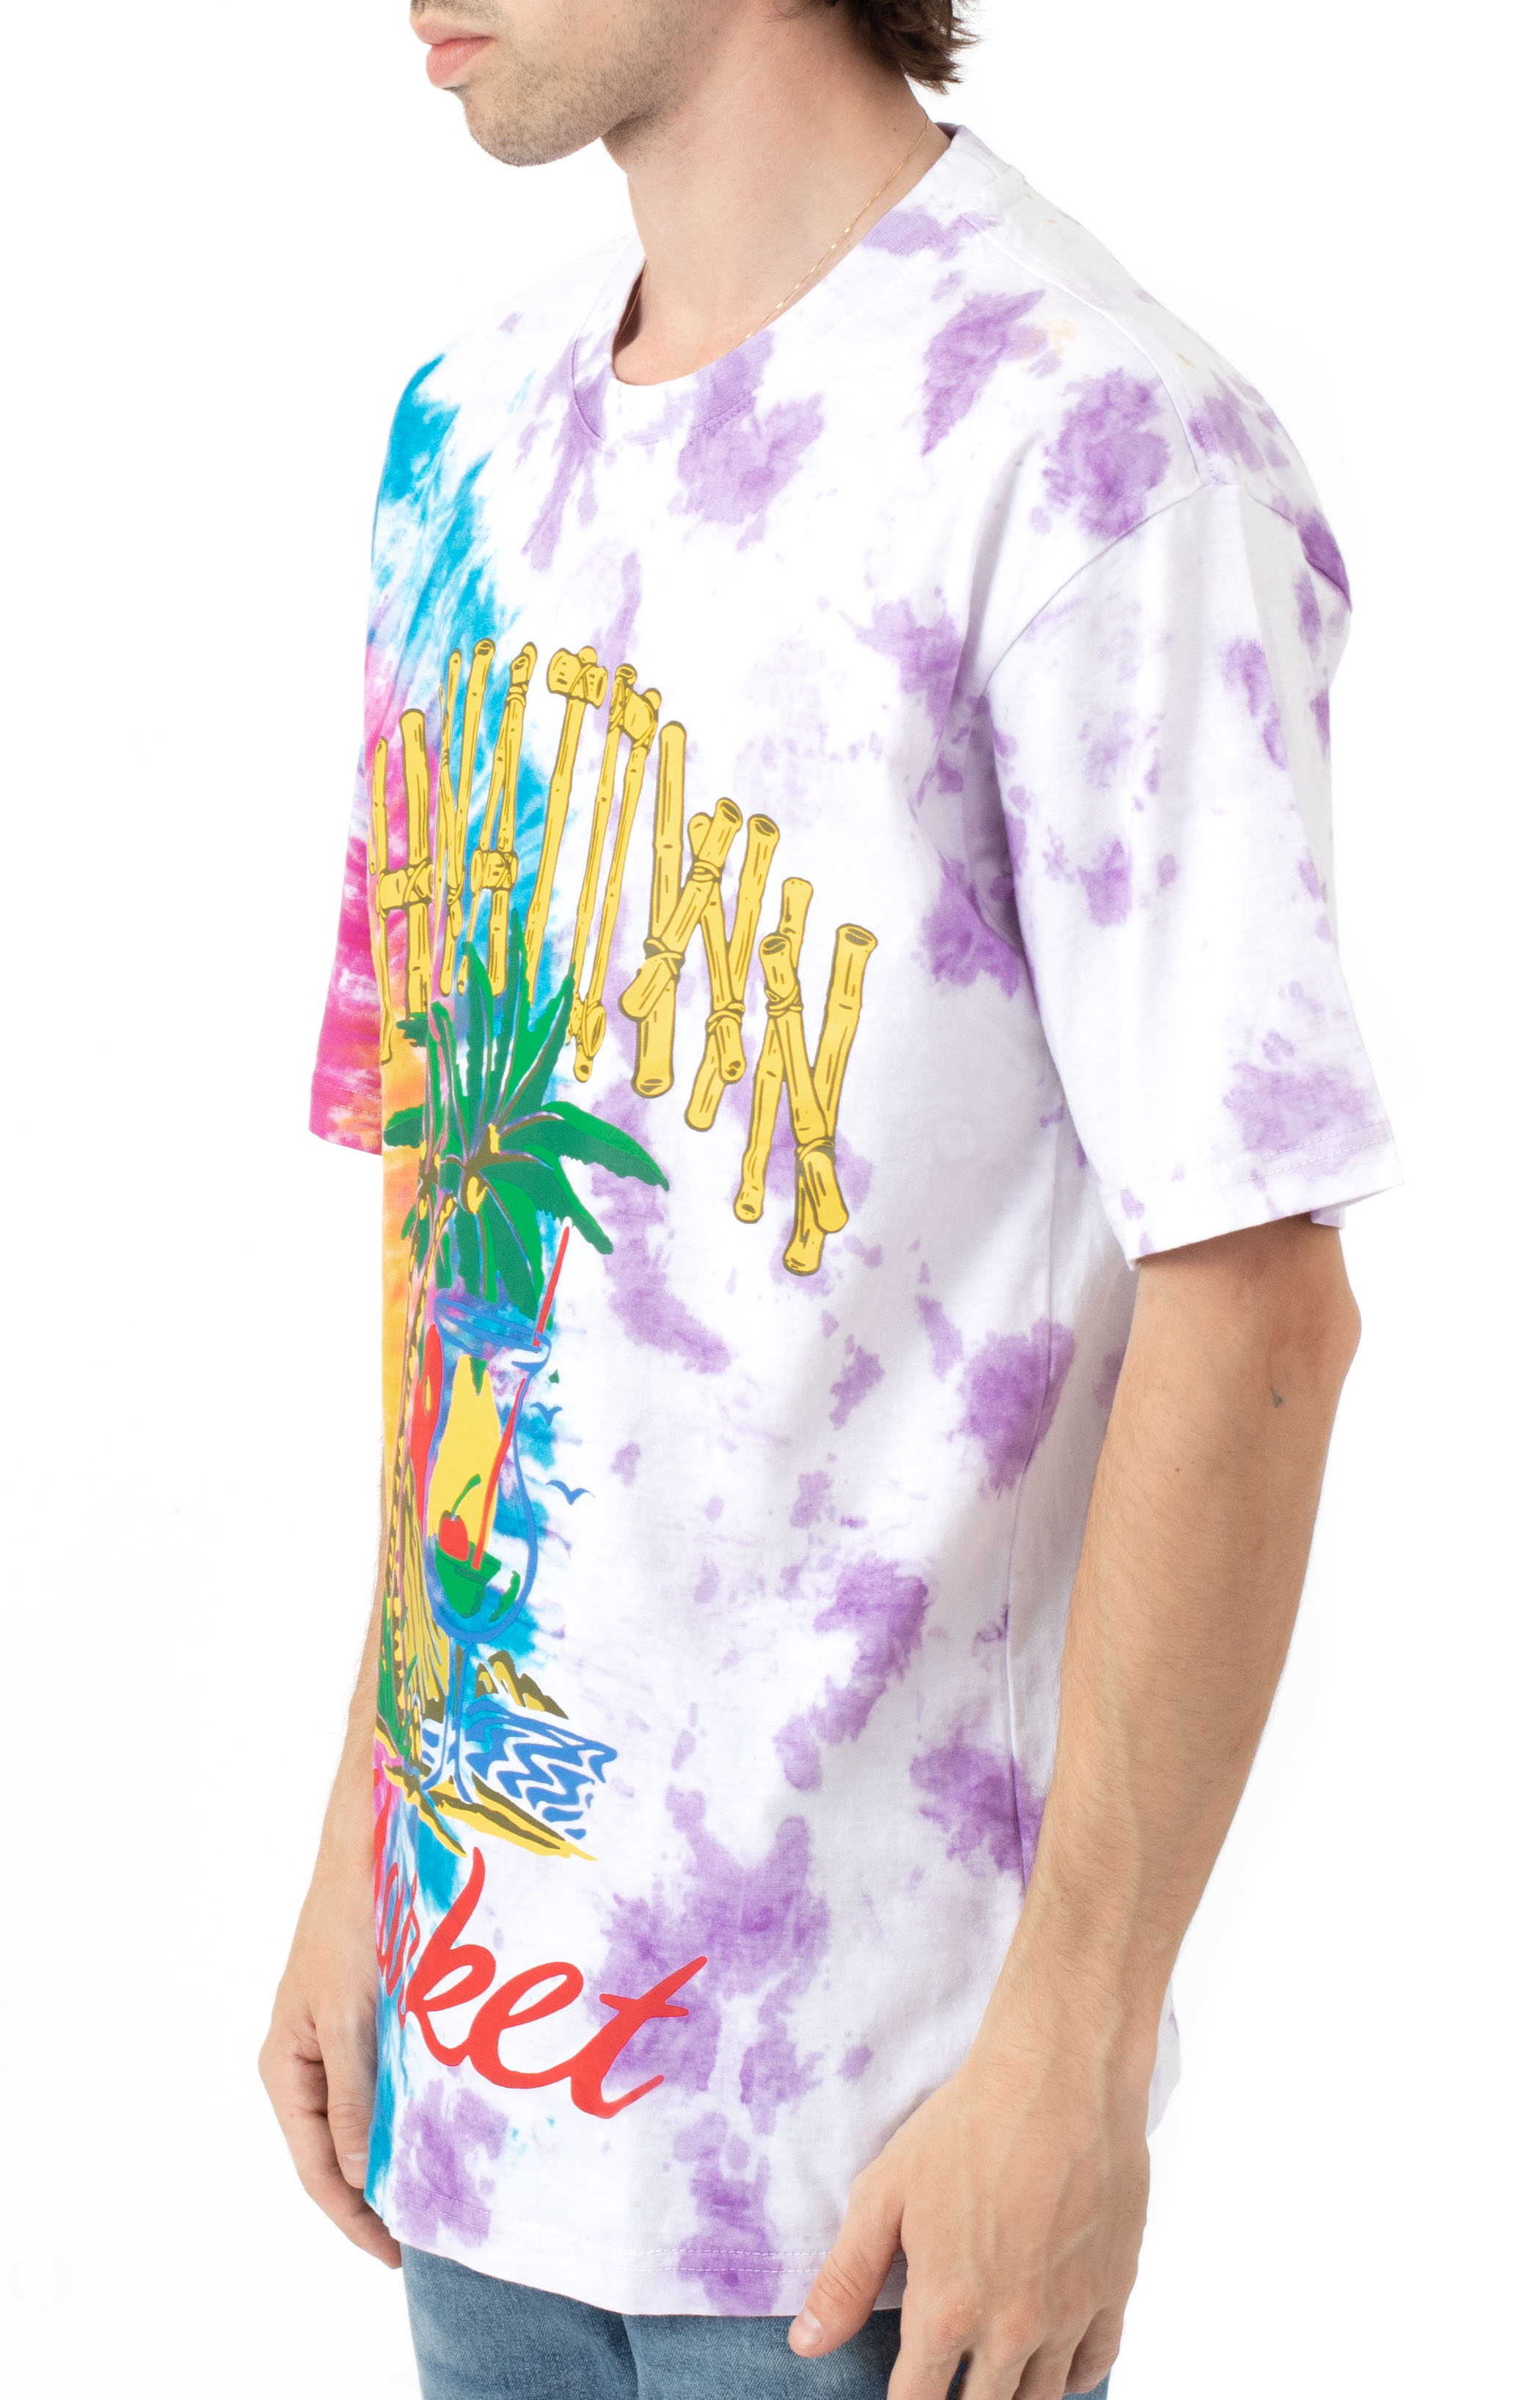 By The Water T-Shirt - Tie-Dye  2